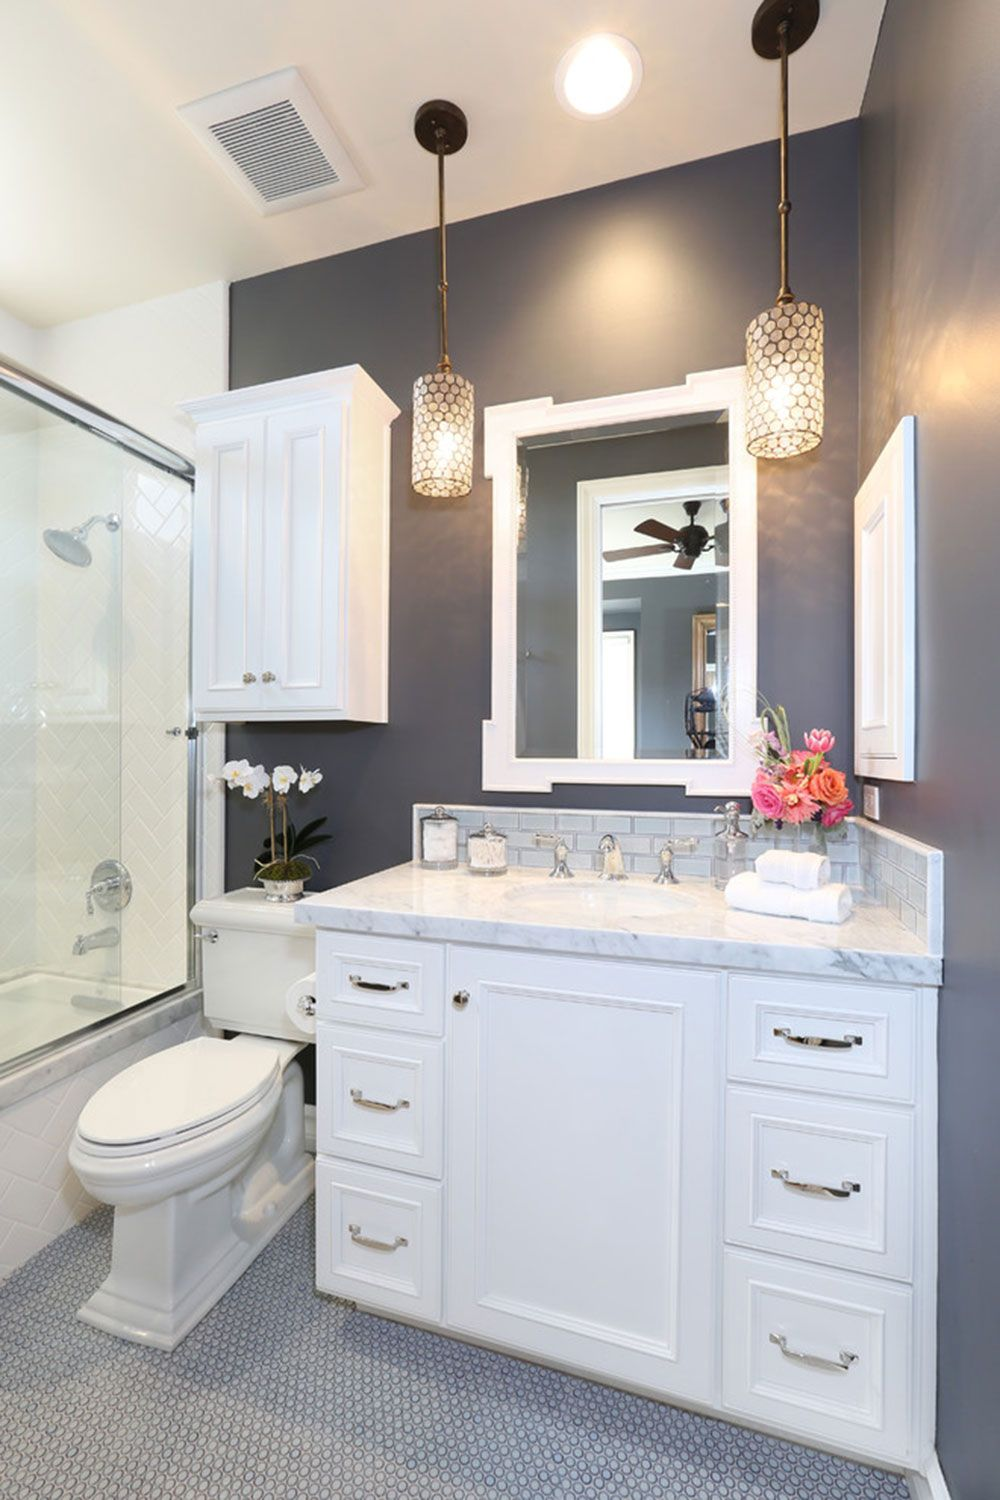 Superb How To Make A Small Bathroom Look Bigger8